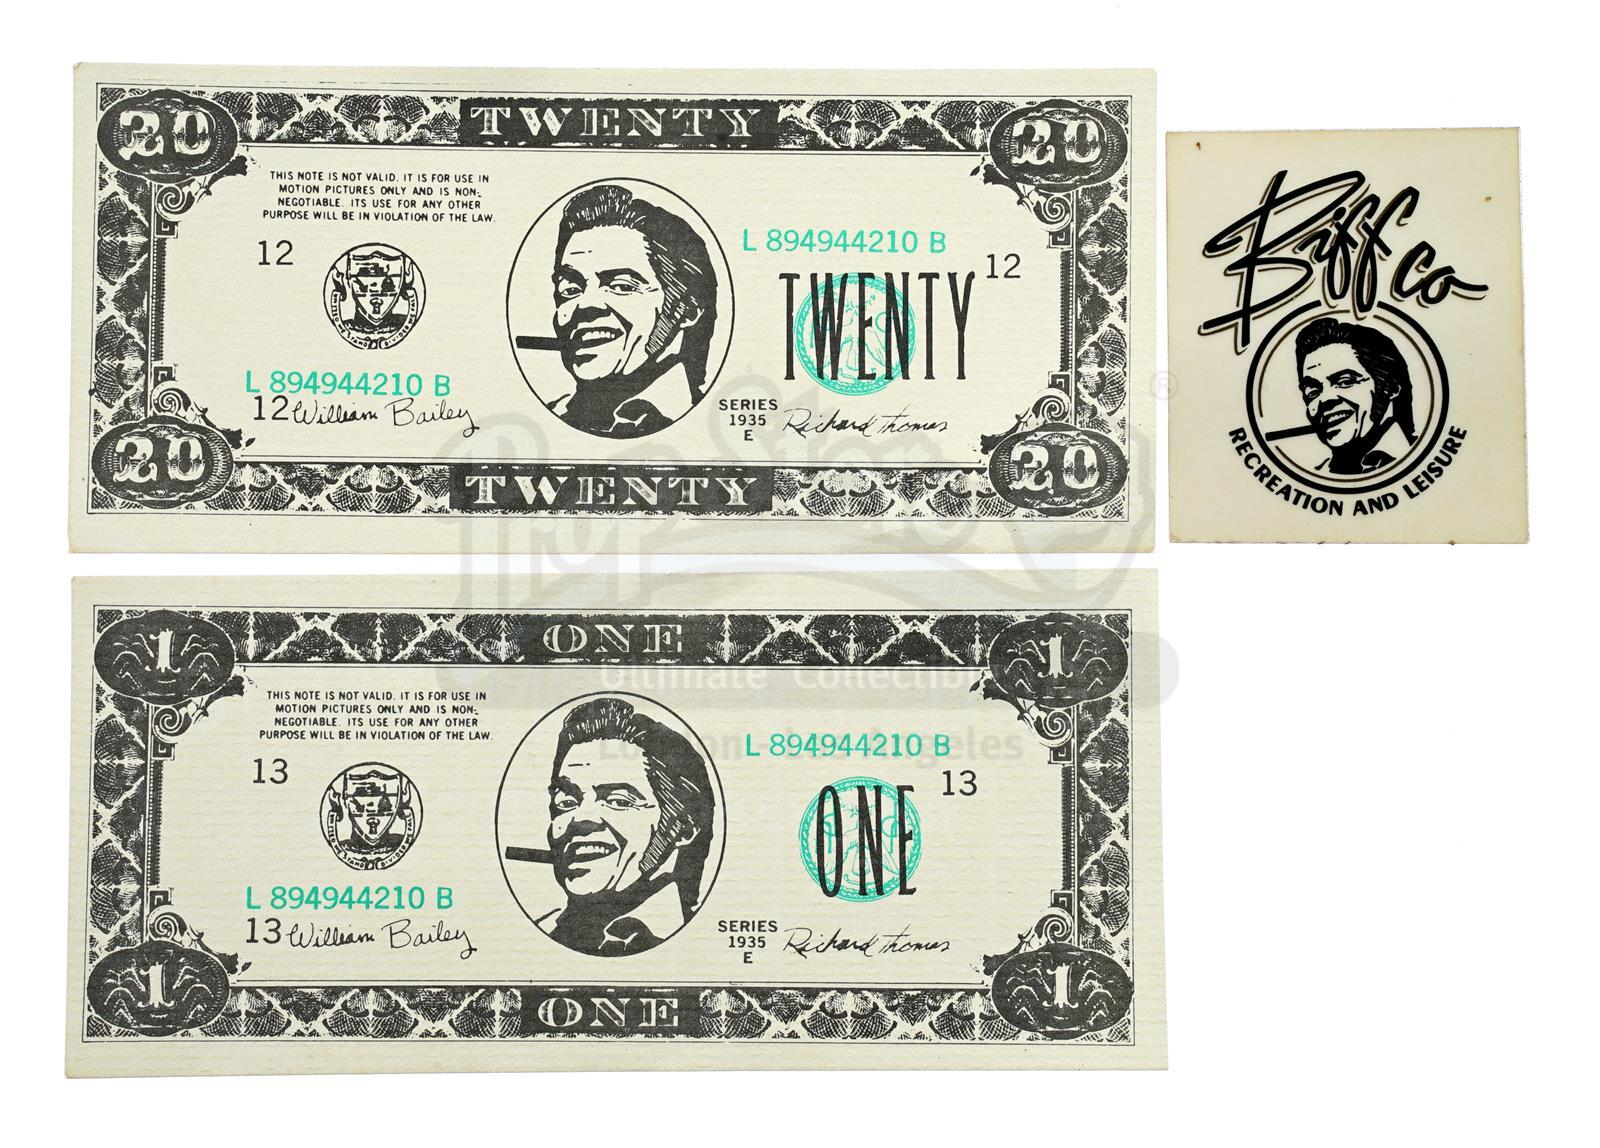 Lot # 491: BACK TO THE FUTURE PART II - Two Biffco Currency Notes and Biffco Sticker